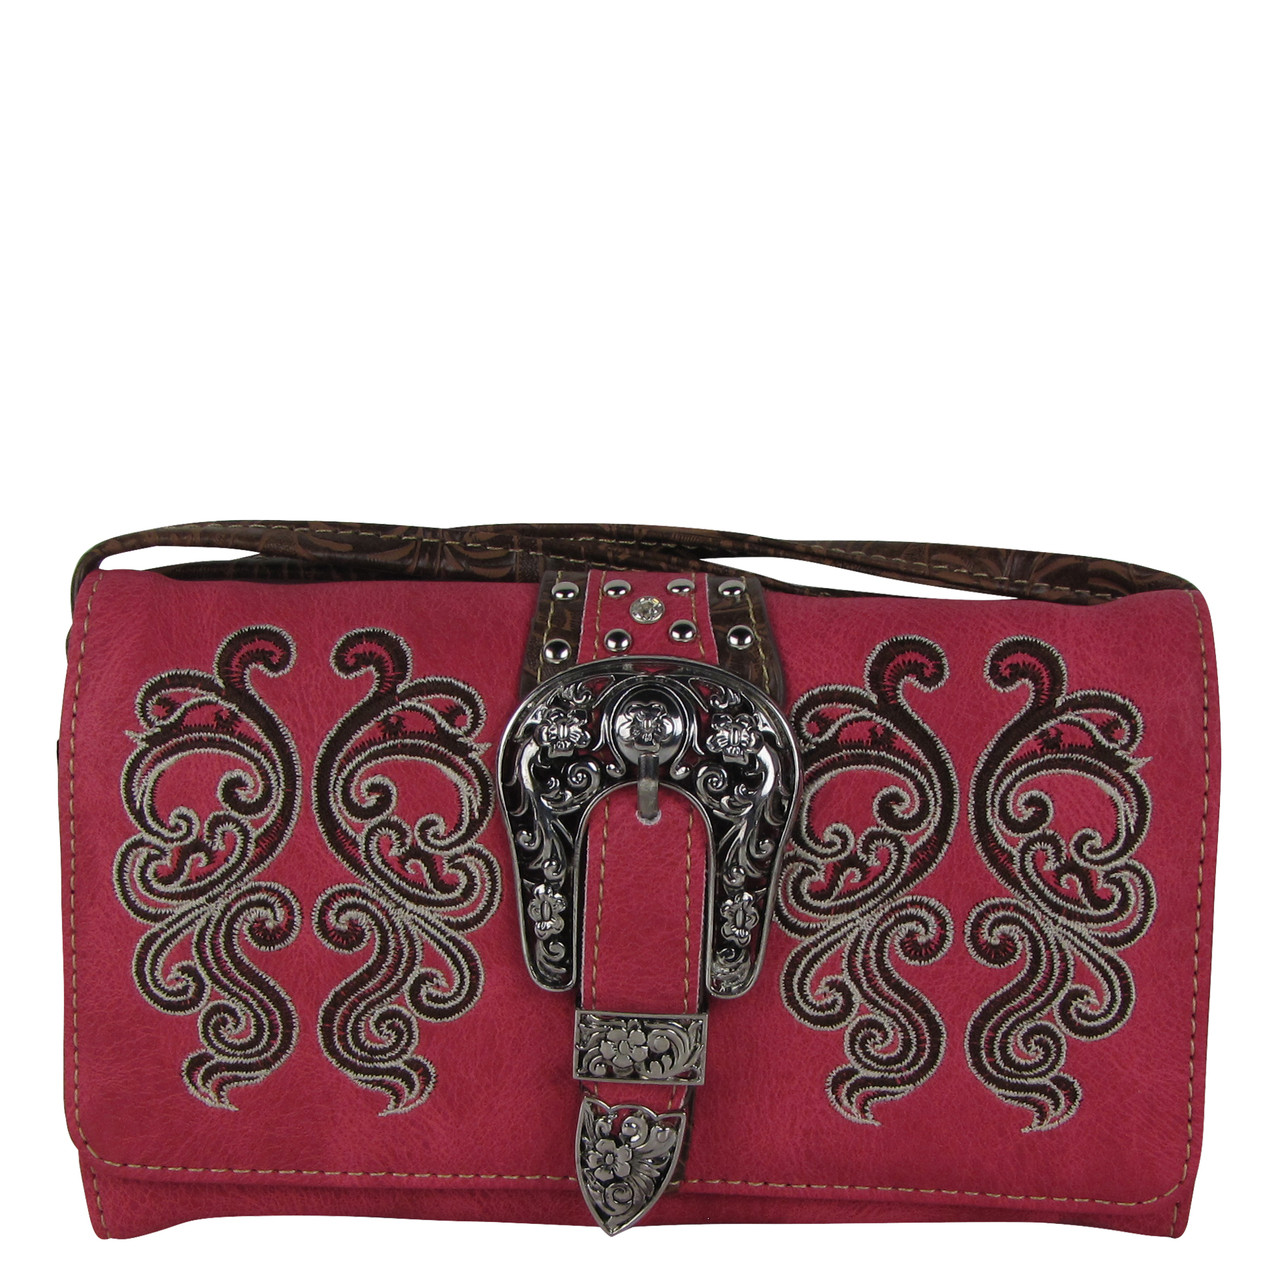 HOT PINK WESTERN BUCKLE LOOK CLUTCH TRIFOLD WALLET CW1-1277HPK